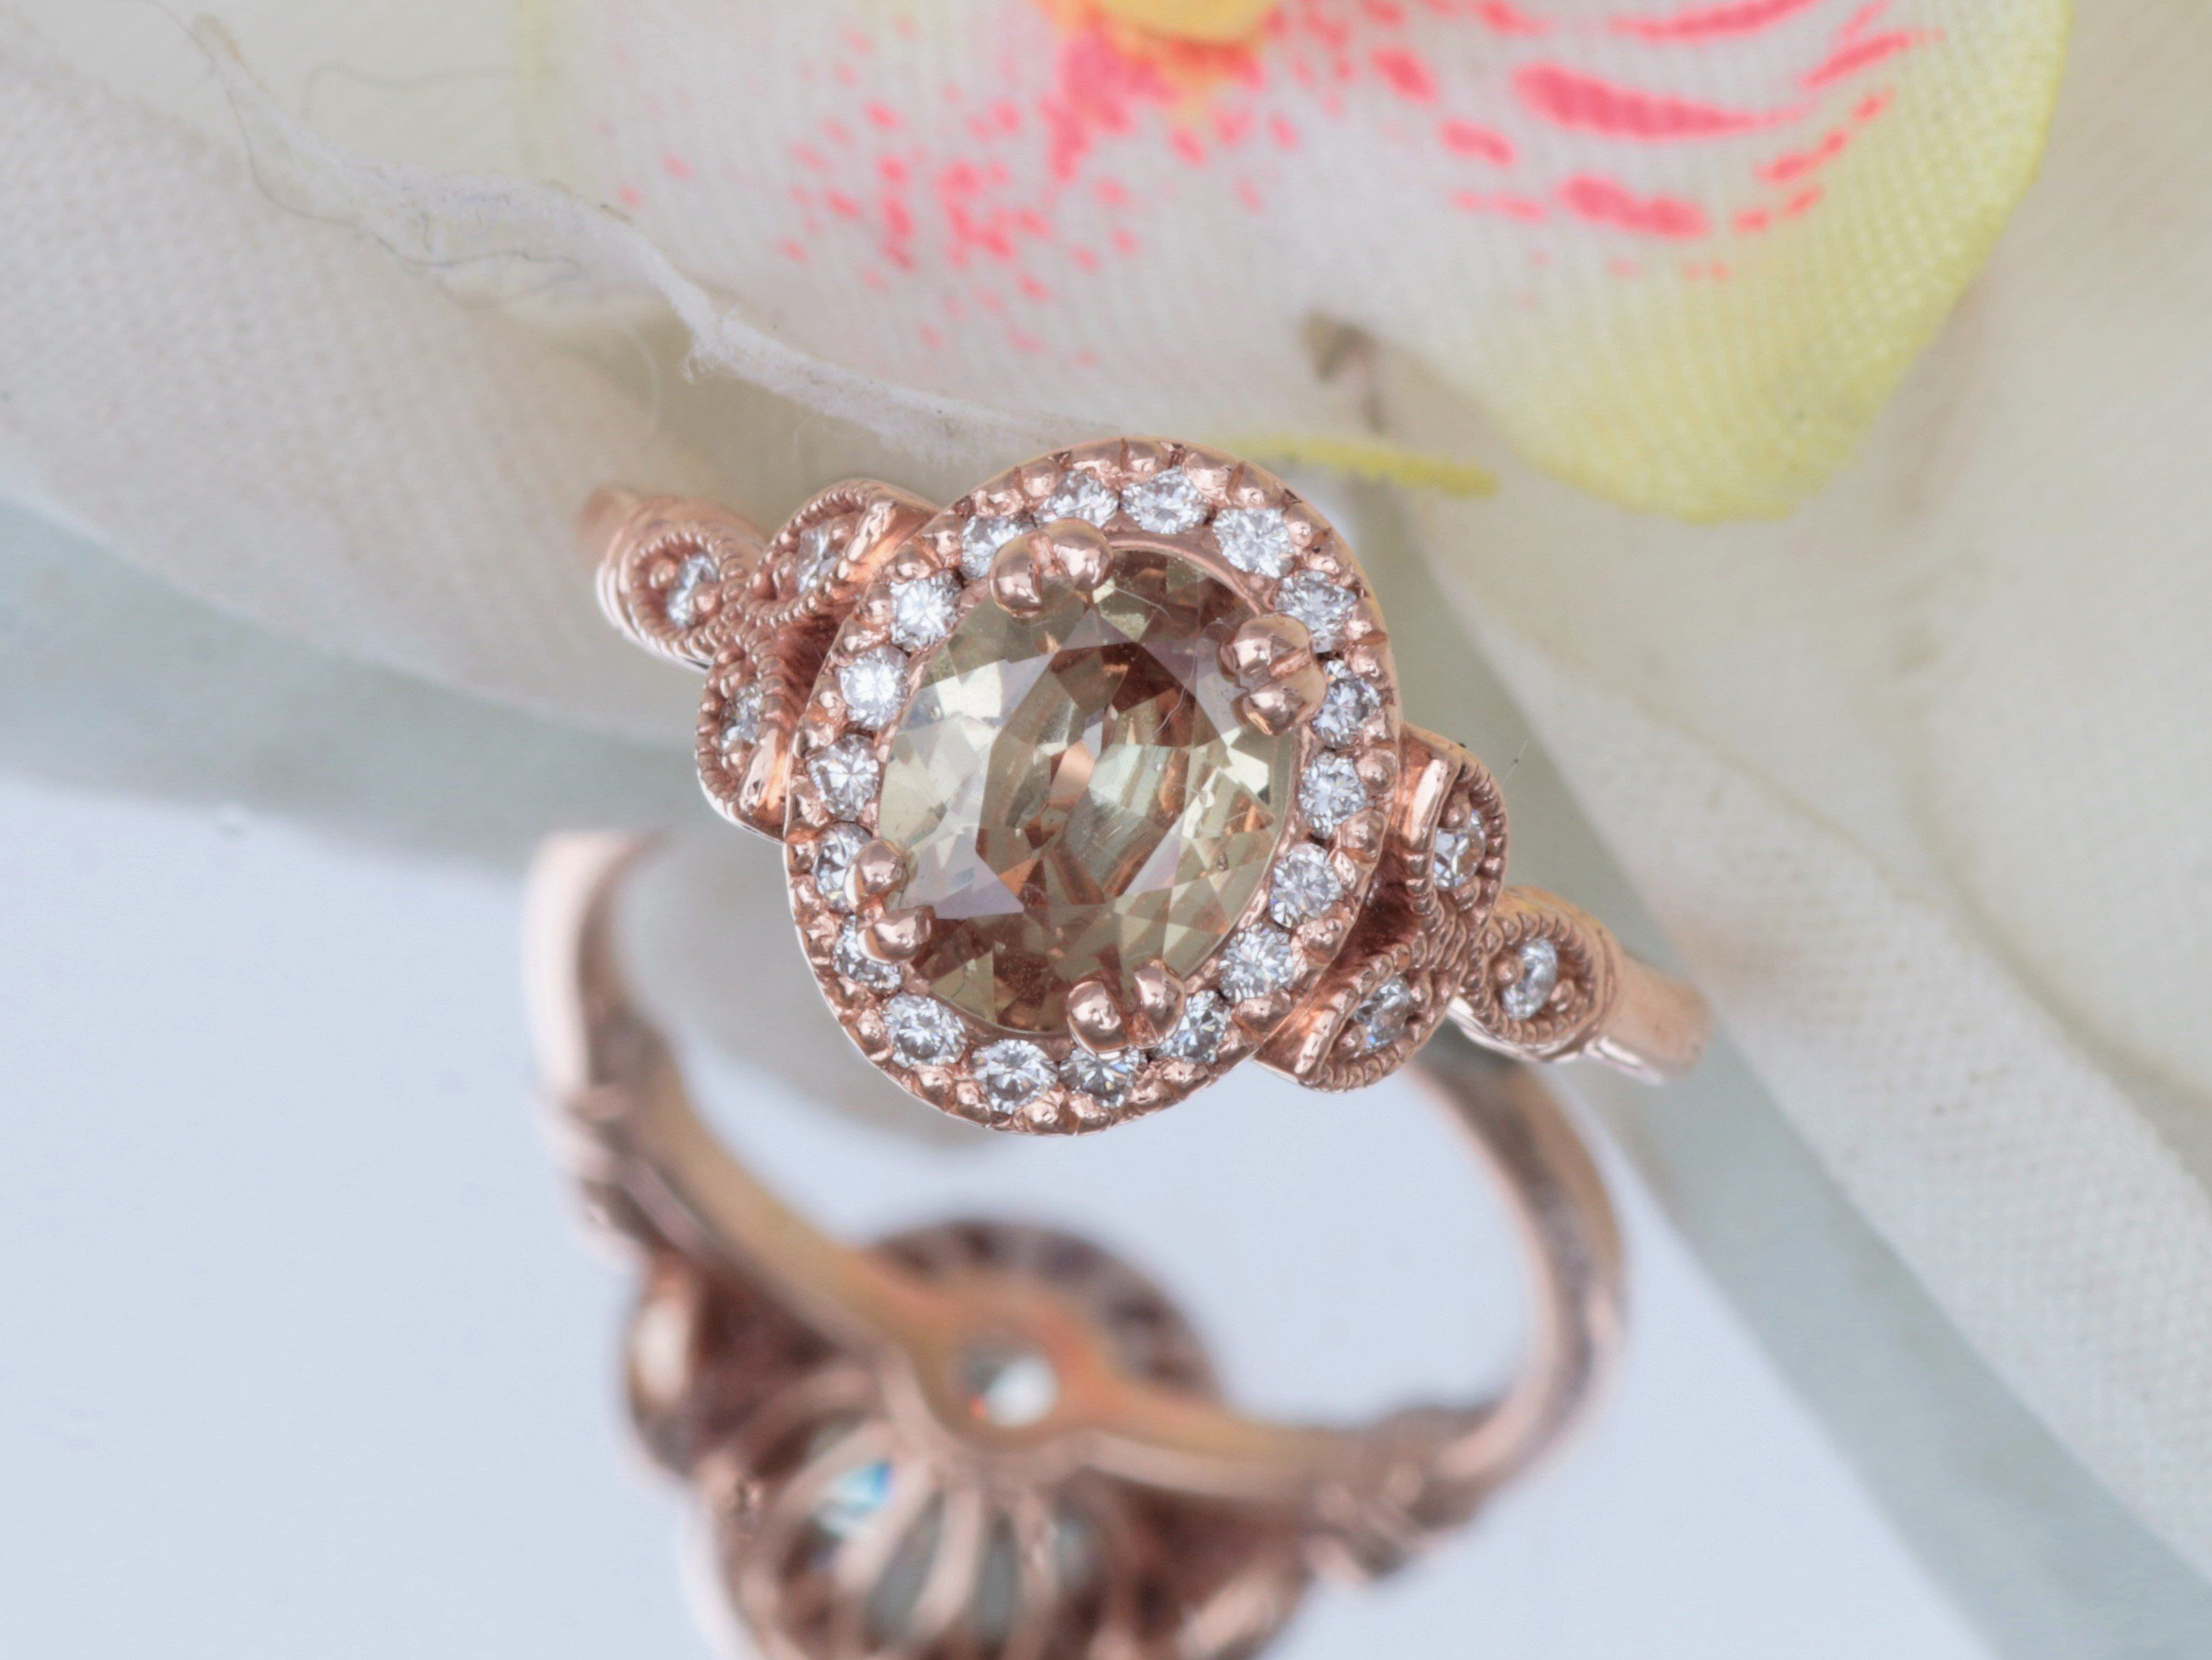 rose peach luxury diamond of engagement alternative halo gold weddings com pear sapphire fresh ring shaped